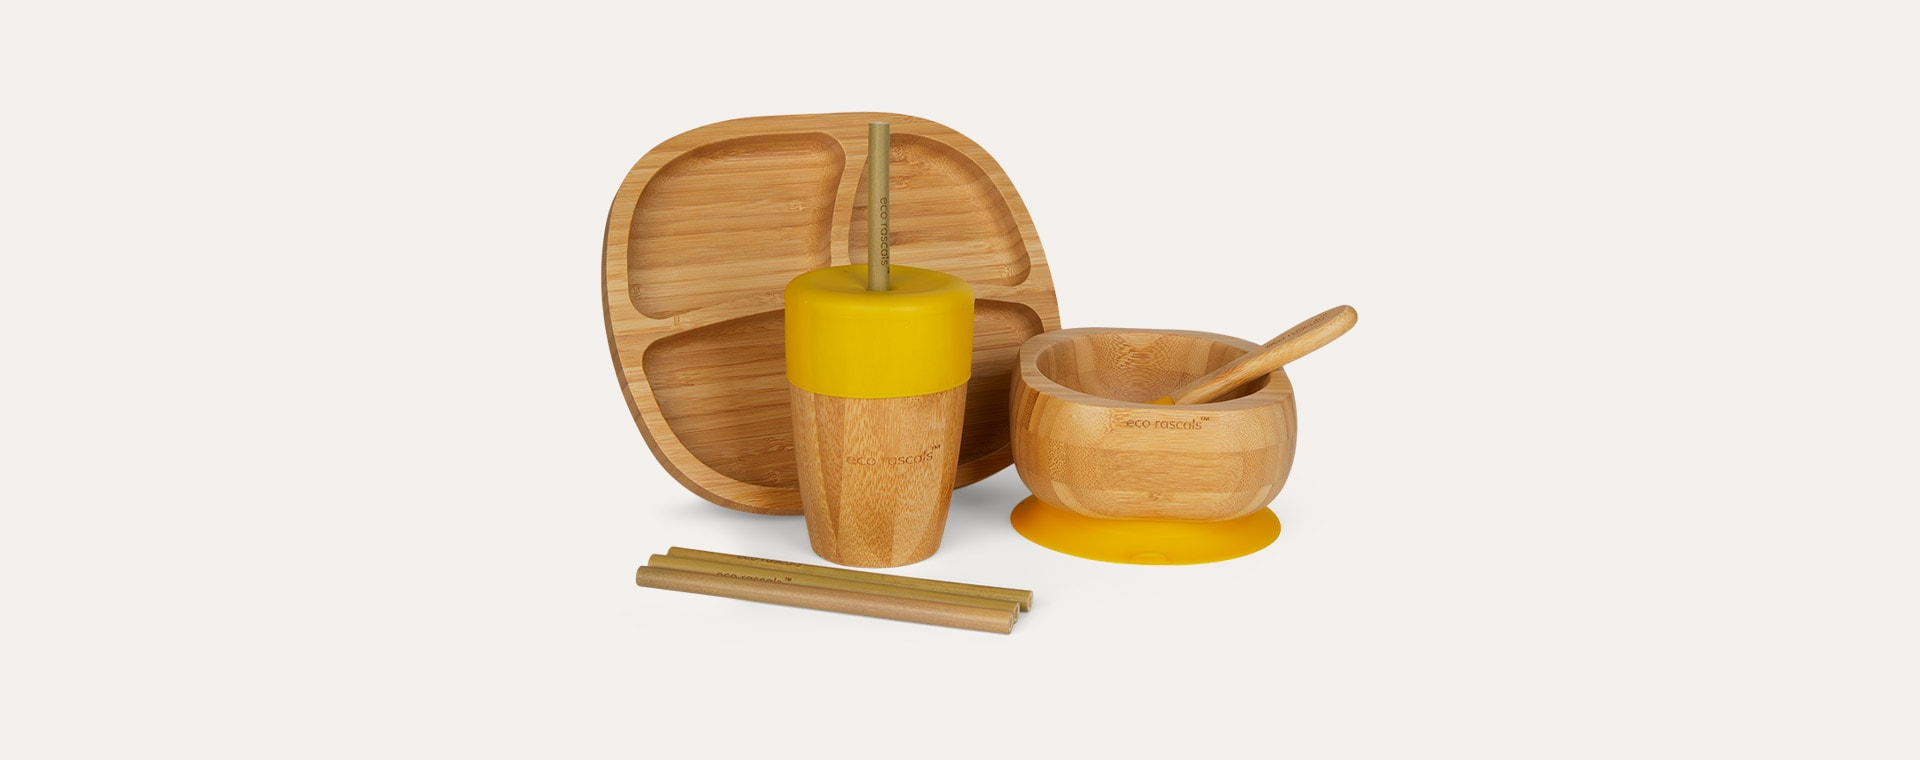 Yellow eco rascals Bamboo Suction Toddler Tableware Set